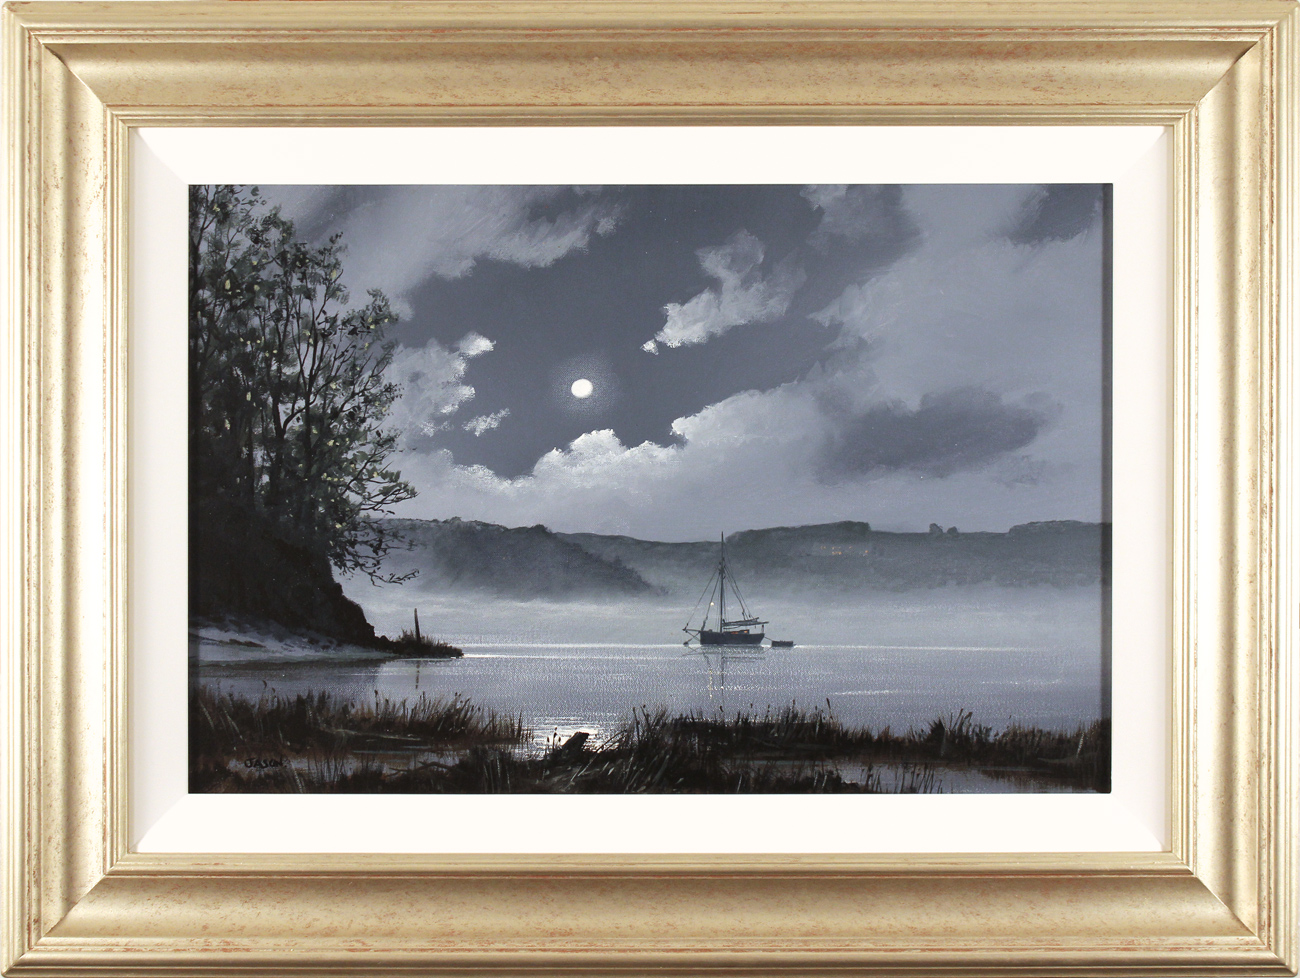 Les Spence, Original oil painting on canvas, Foggy Tides, click to enlarge